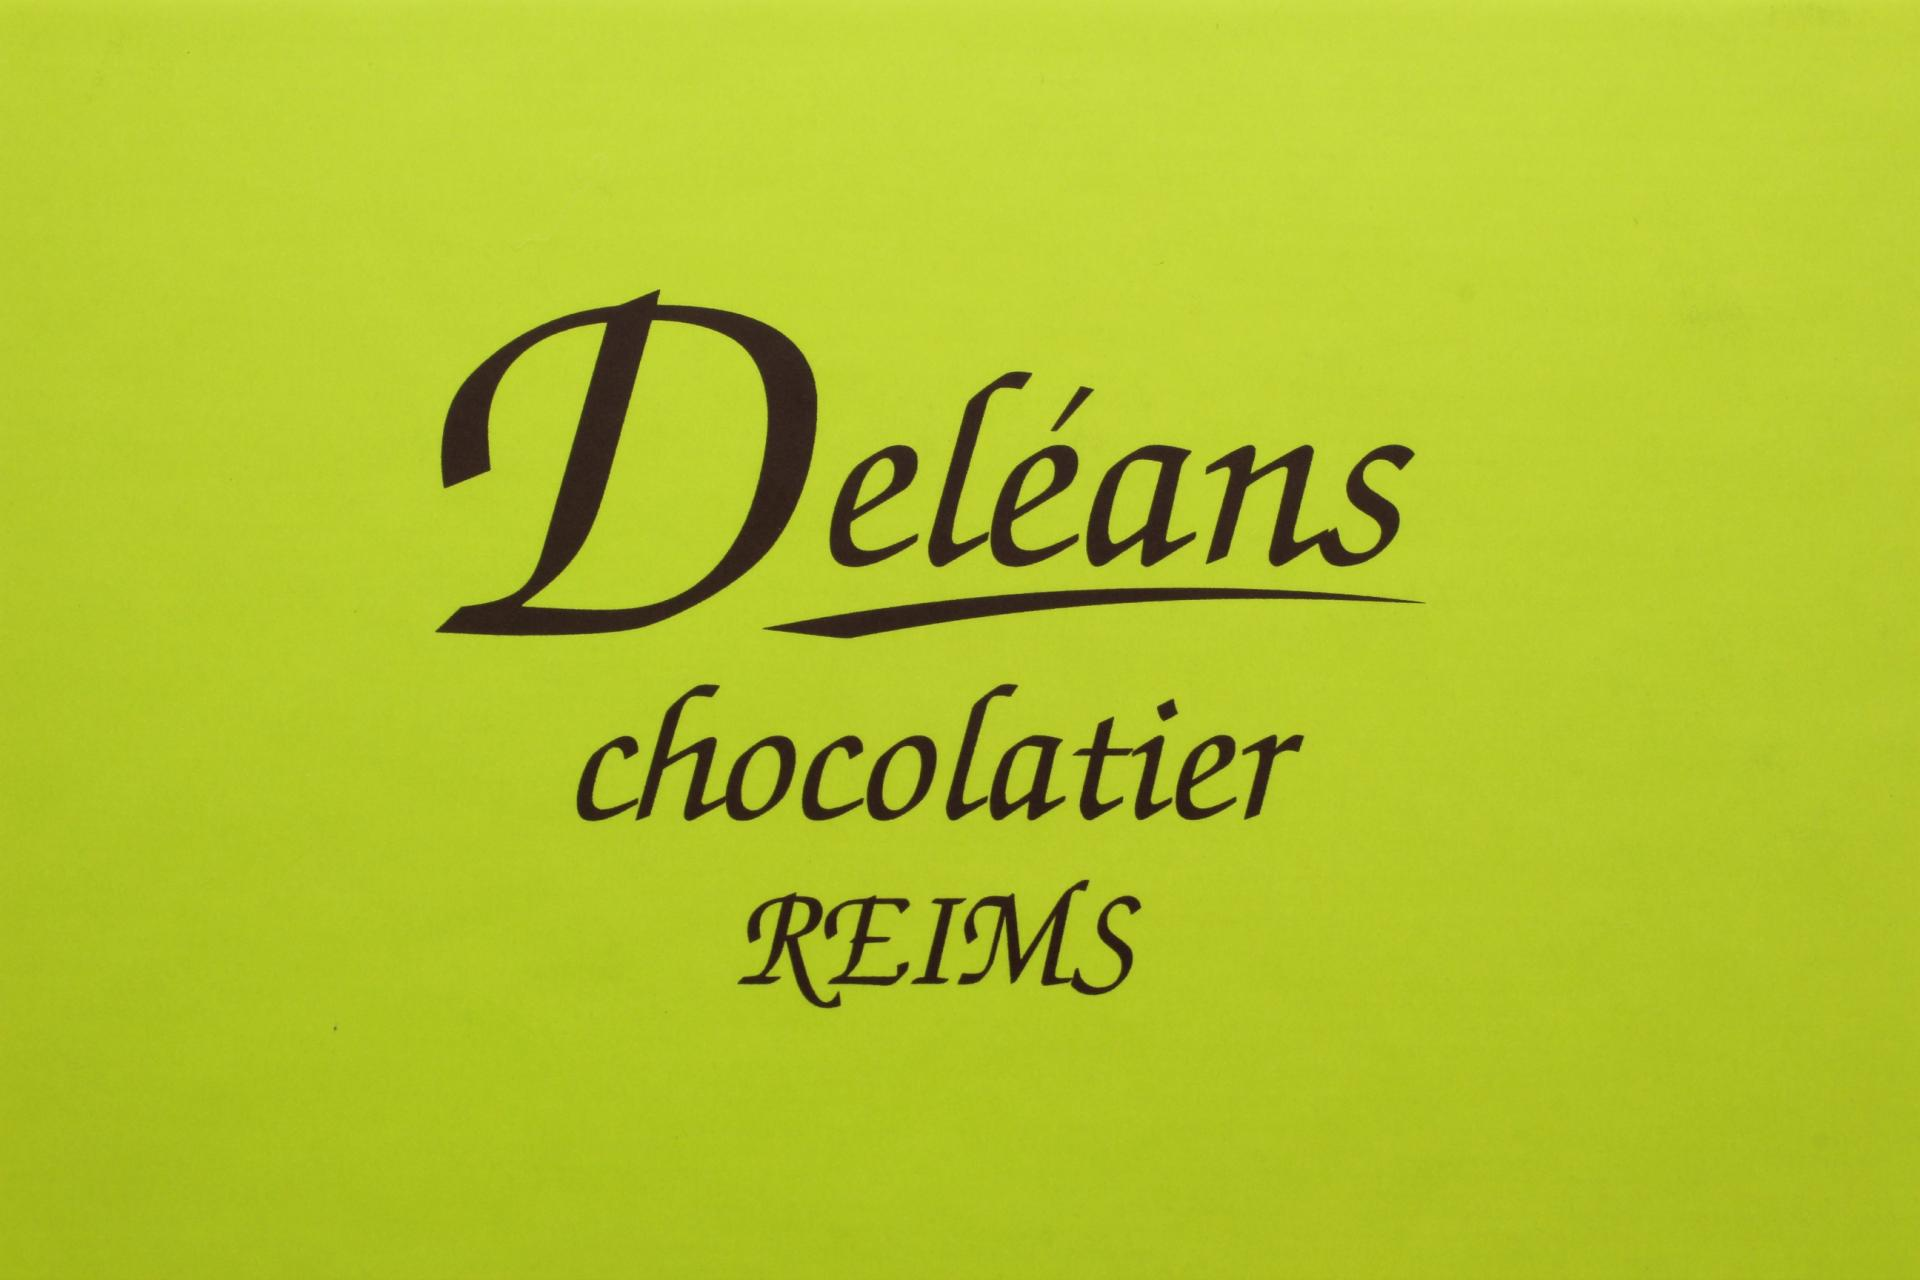 Chocolaterie Deléans